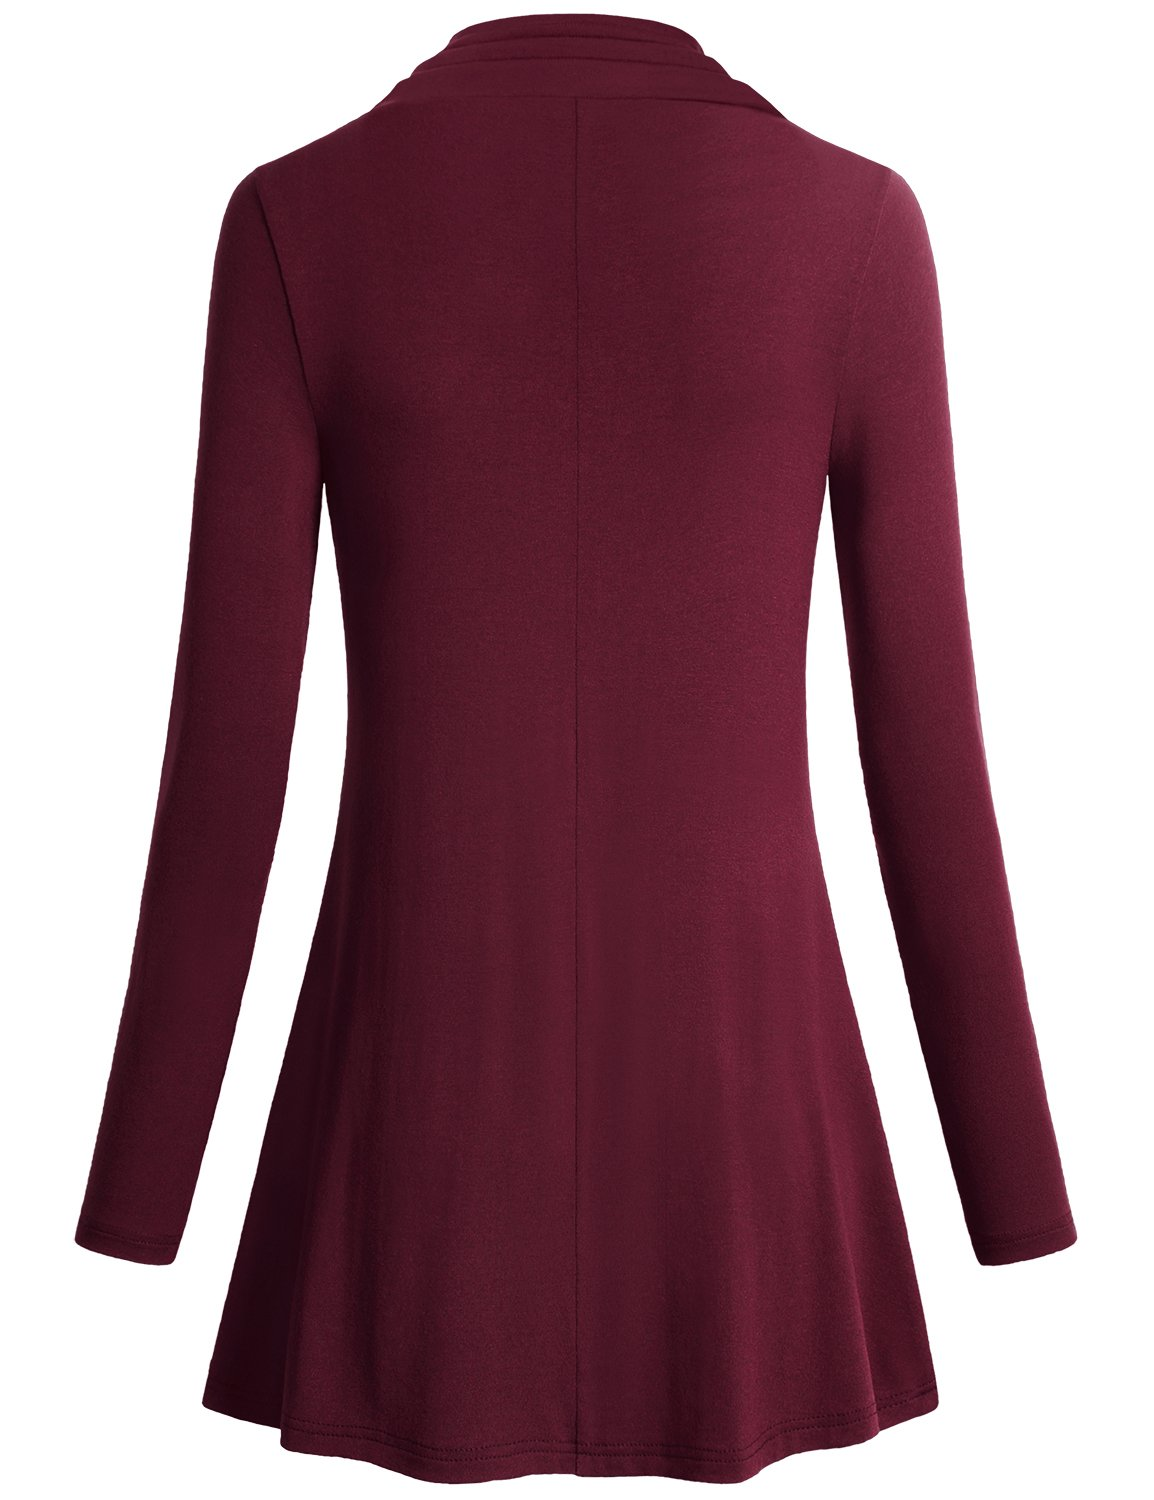 Miusey Womens Tunic Tops Ladies Long Sleeve Easy Fit Outdoor T Shirt Flowing Cowl Neck Button Décor Pullover Knit A Line Elastic Youth Blouses Pregnancy Plus Size Sweaters Wine XXXL by Miusey (Image #2)